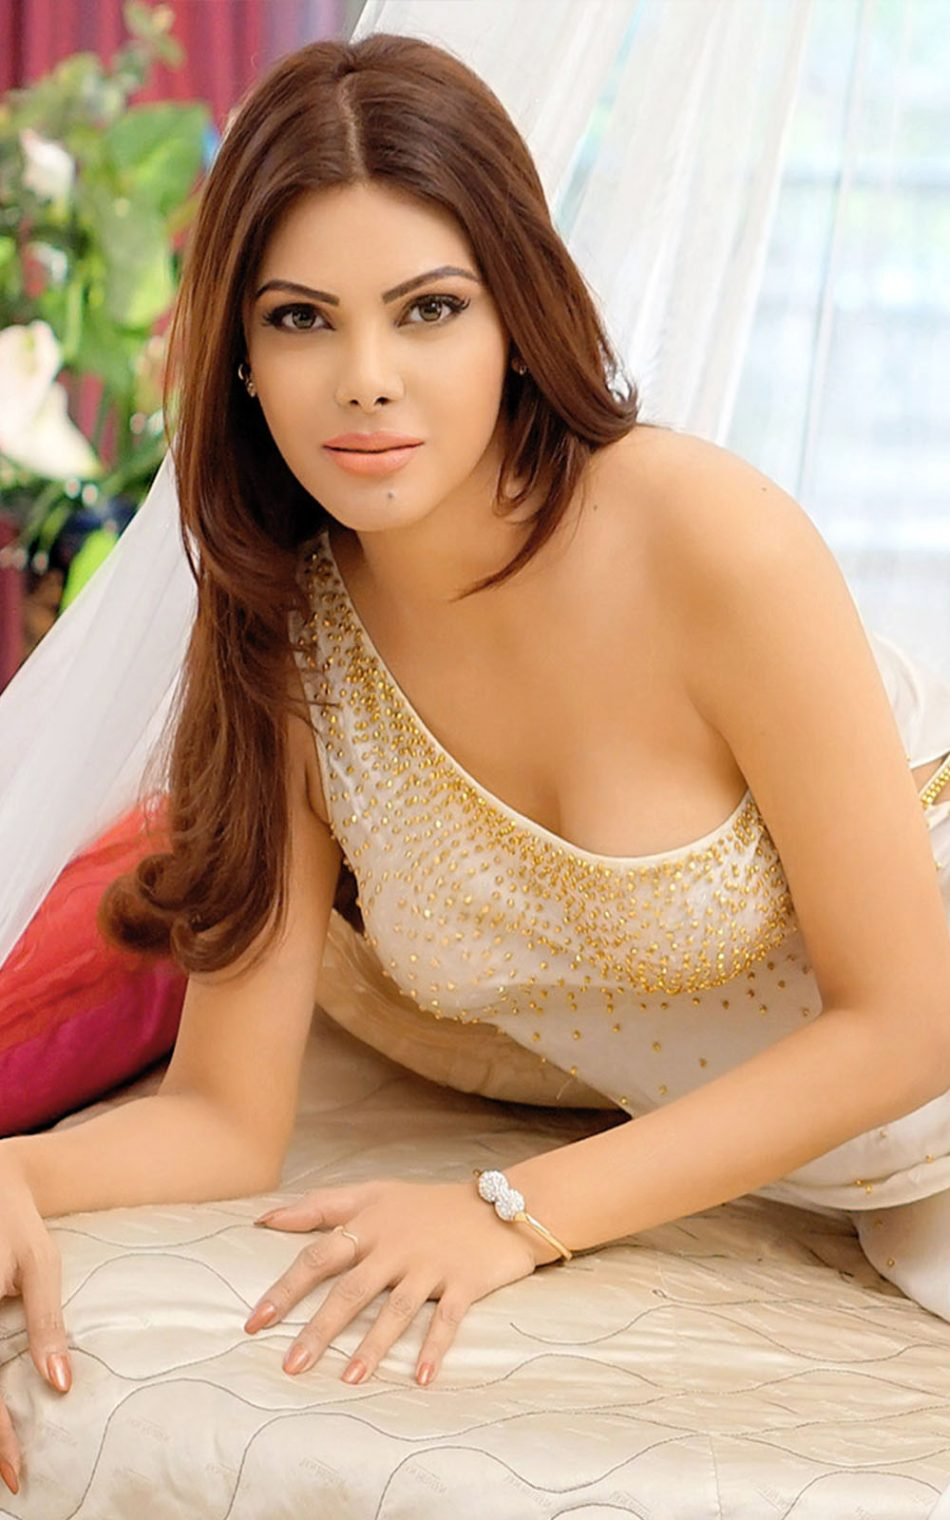 Sherlyn Chopra Download Free 100 Pure HD Quality Mobile